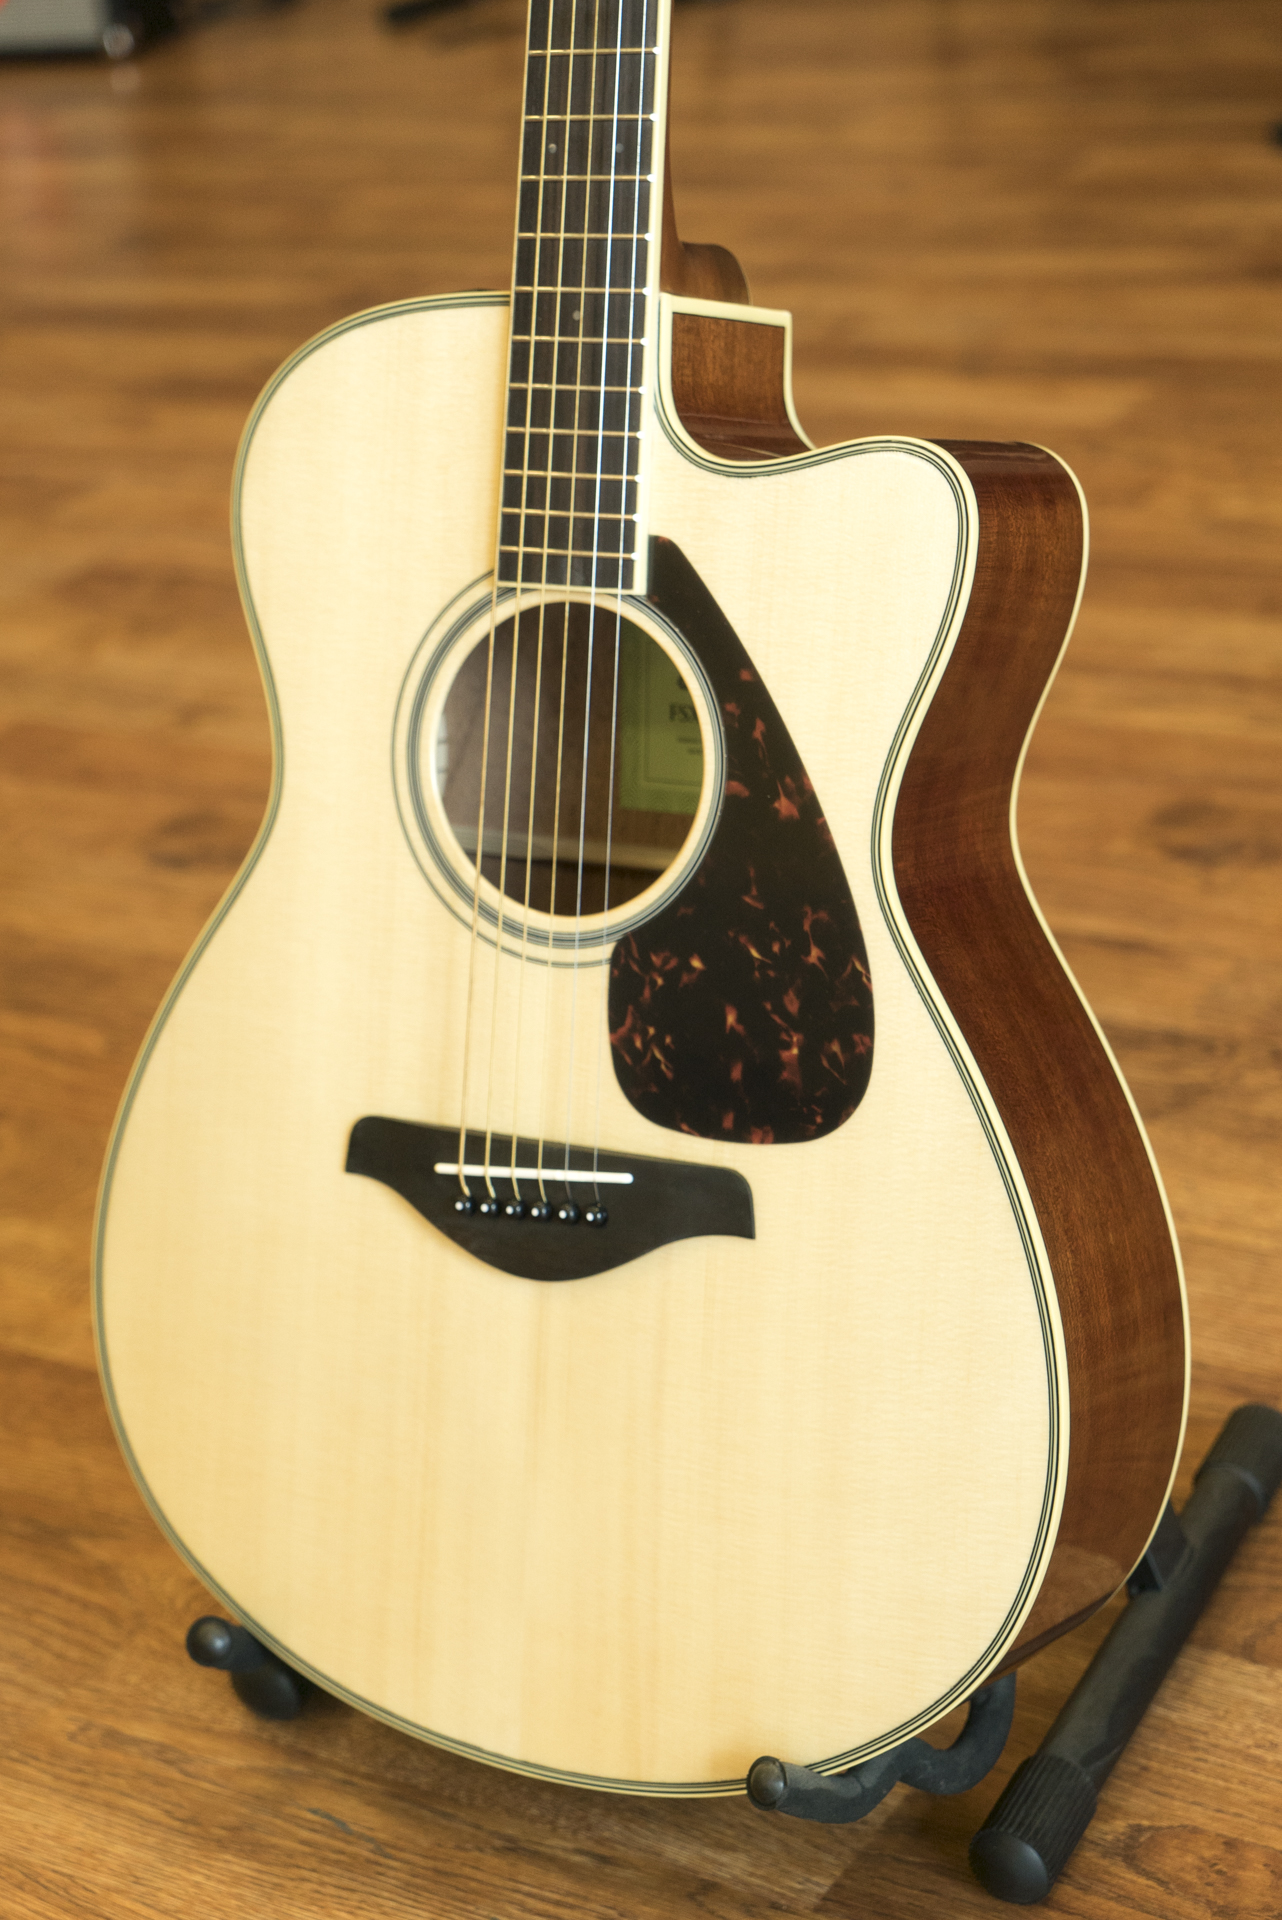 yamaha fsx820c solid top small body acoustic electric guitar natural 889025104548 ebay. Black Bedroom Furniture Sets. Home Design Ideas